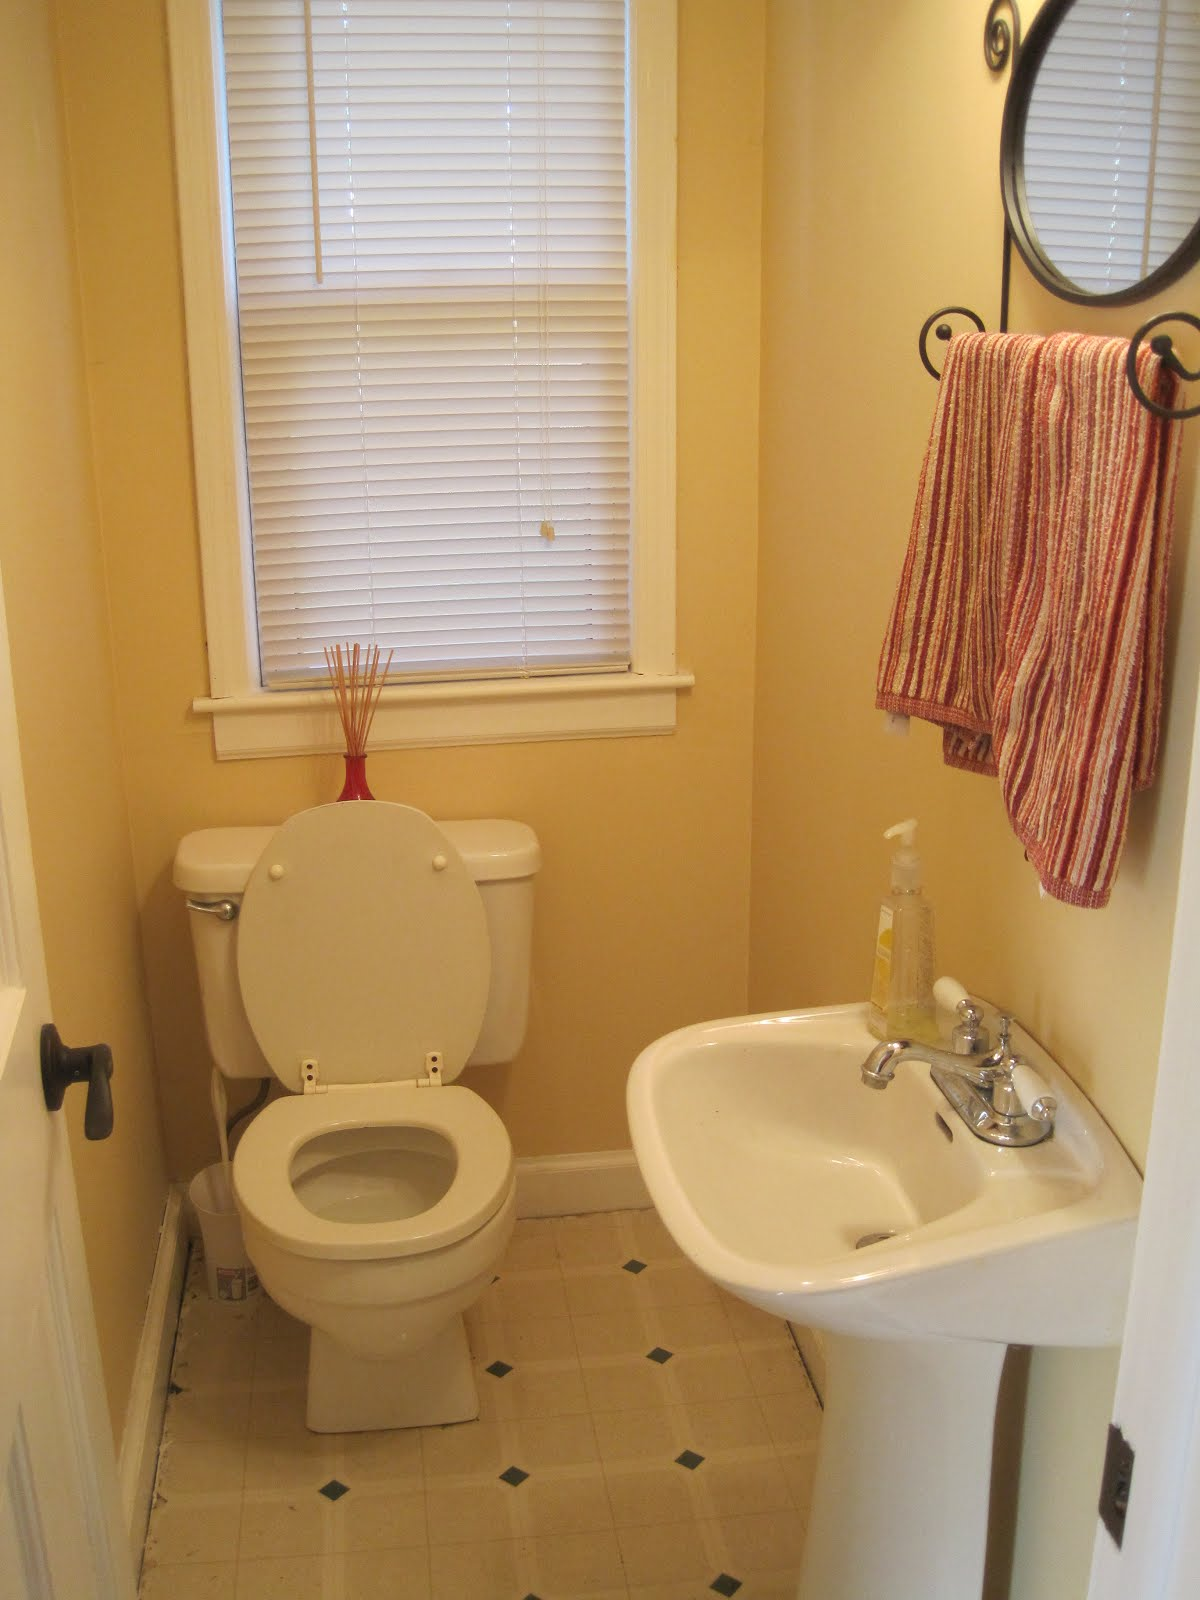 kids bathroom ideas small spaces photo - 7